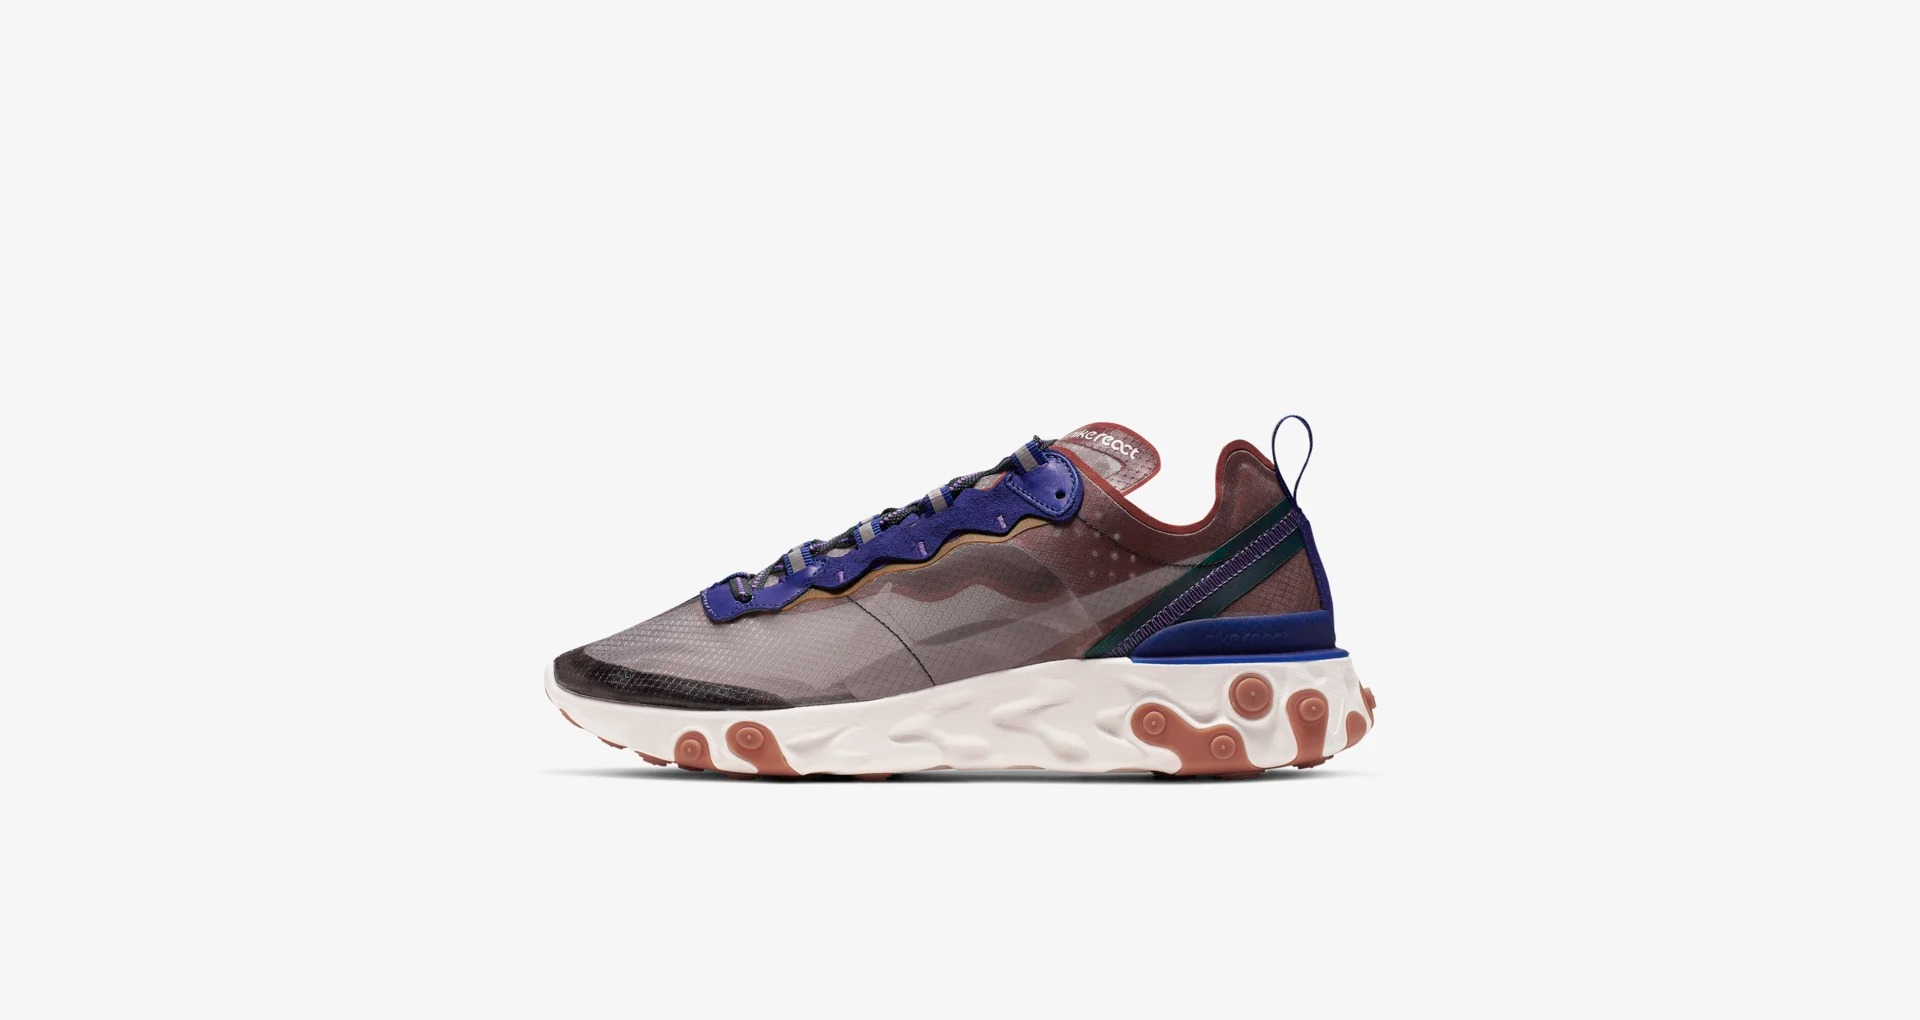 AQ1090 200 Nike React Element 87 Dusty Peach 1